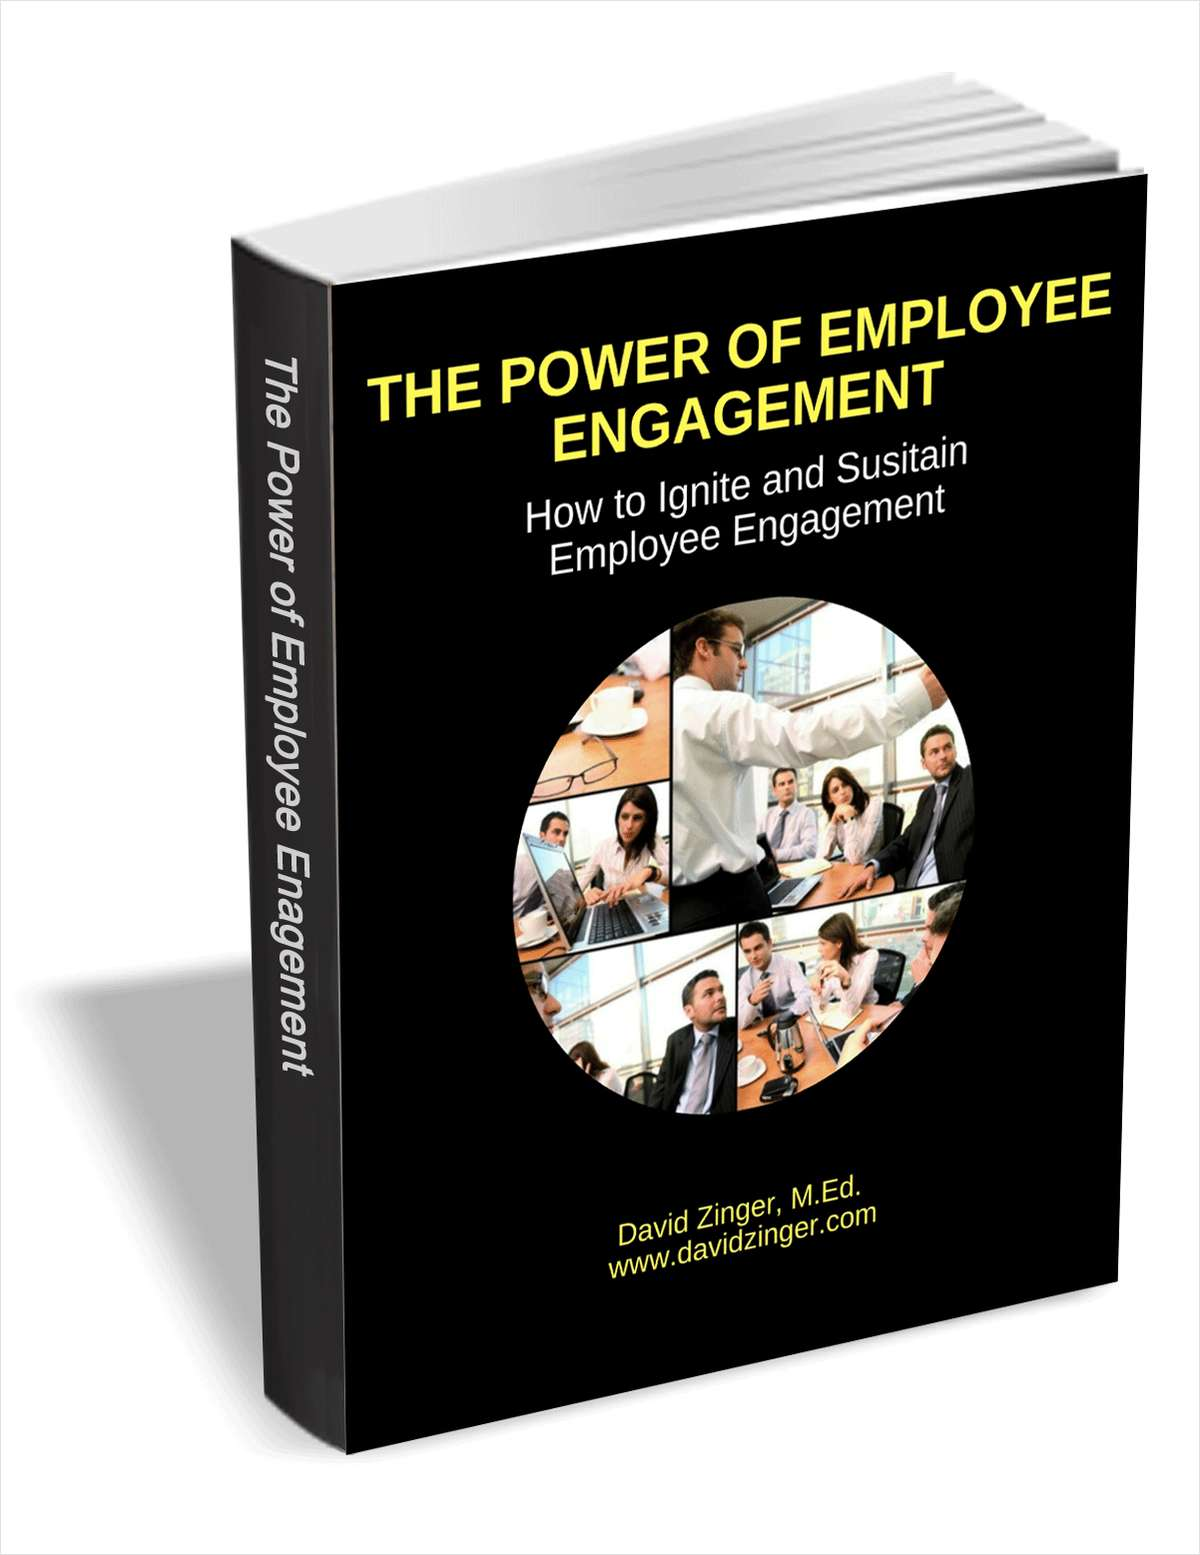 The Power of Employee Engagement - How to Ignite and Sustain Employee Engagement